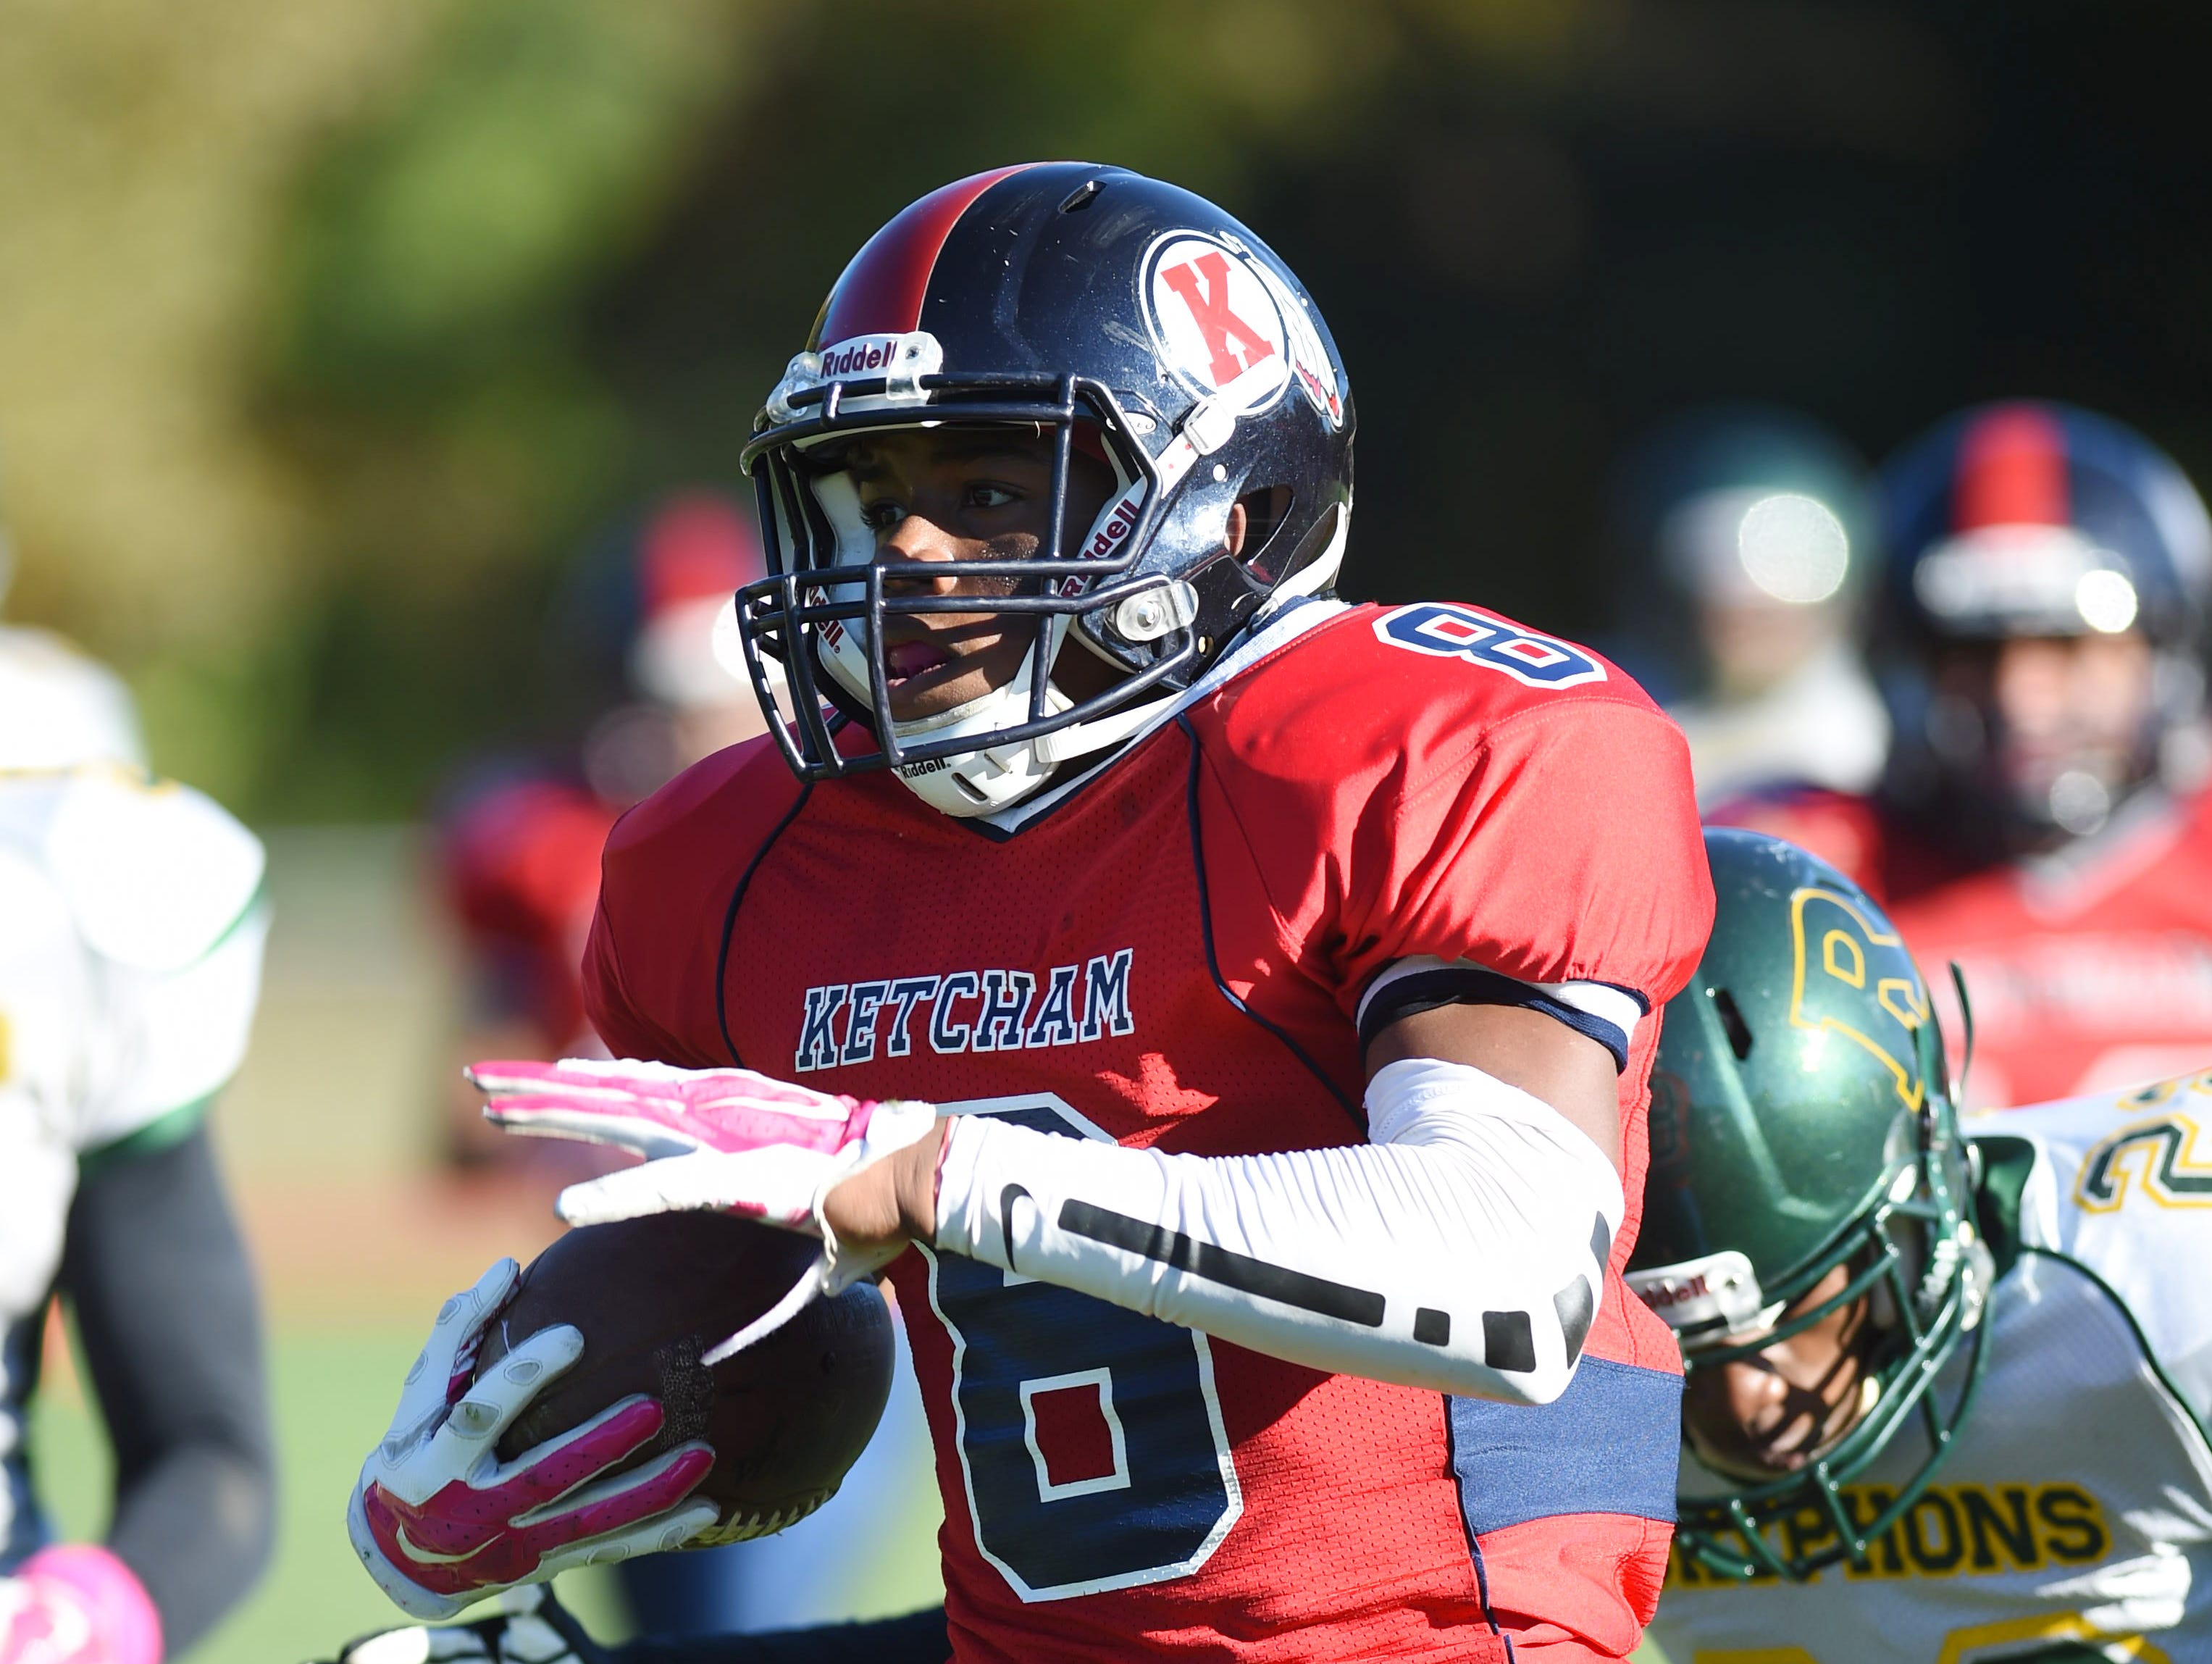 Ketcham's Daahir Woody attempts to outrun Ramapo's defense during Saturday's game in Wappingers Falls.